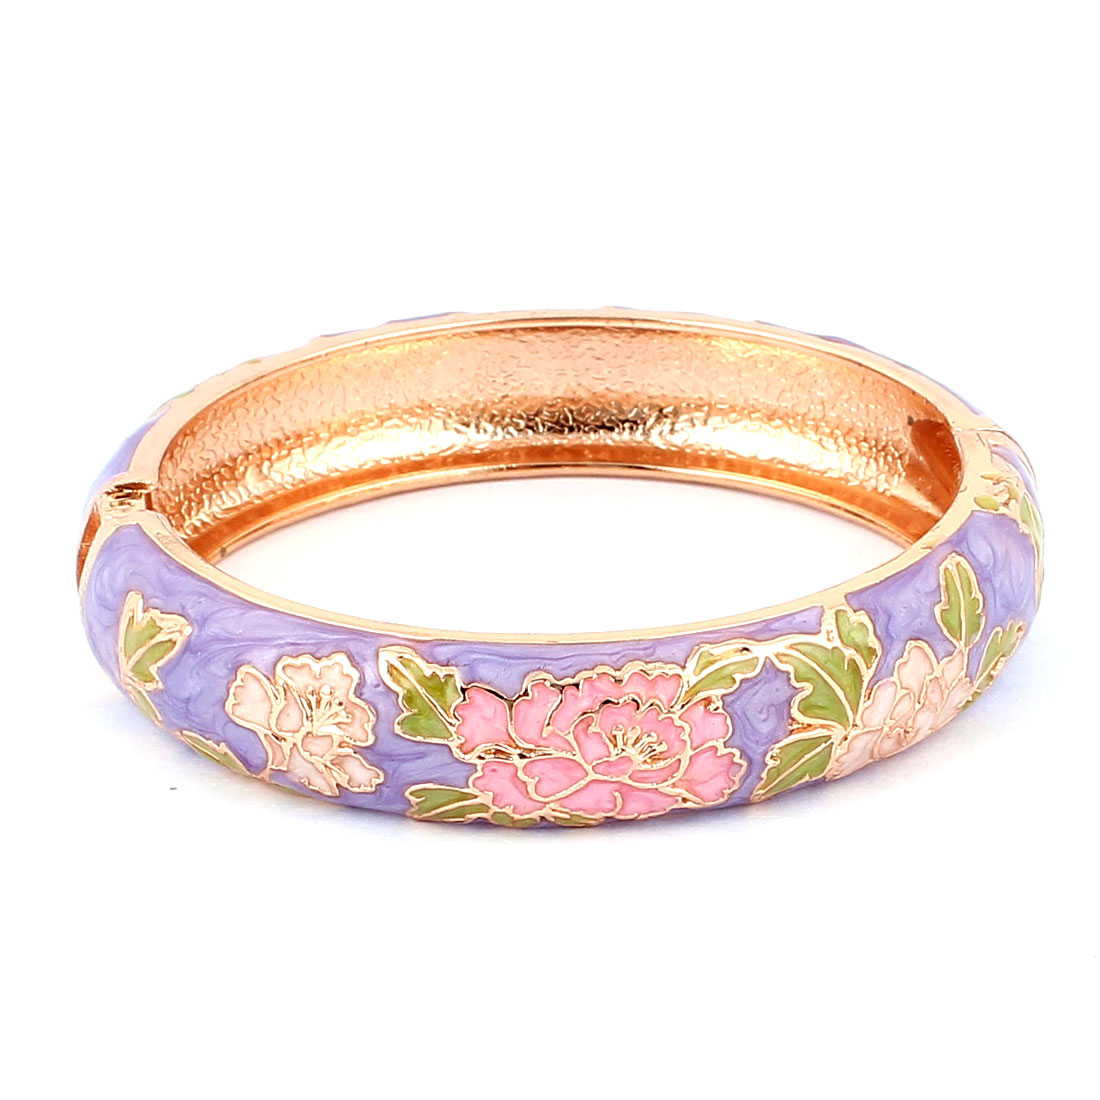 Lady Flower Carved Gold Plated Cuff Open Bracelet Bangle Jewelry Light Purple